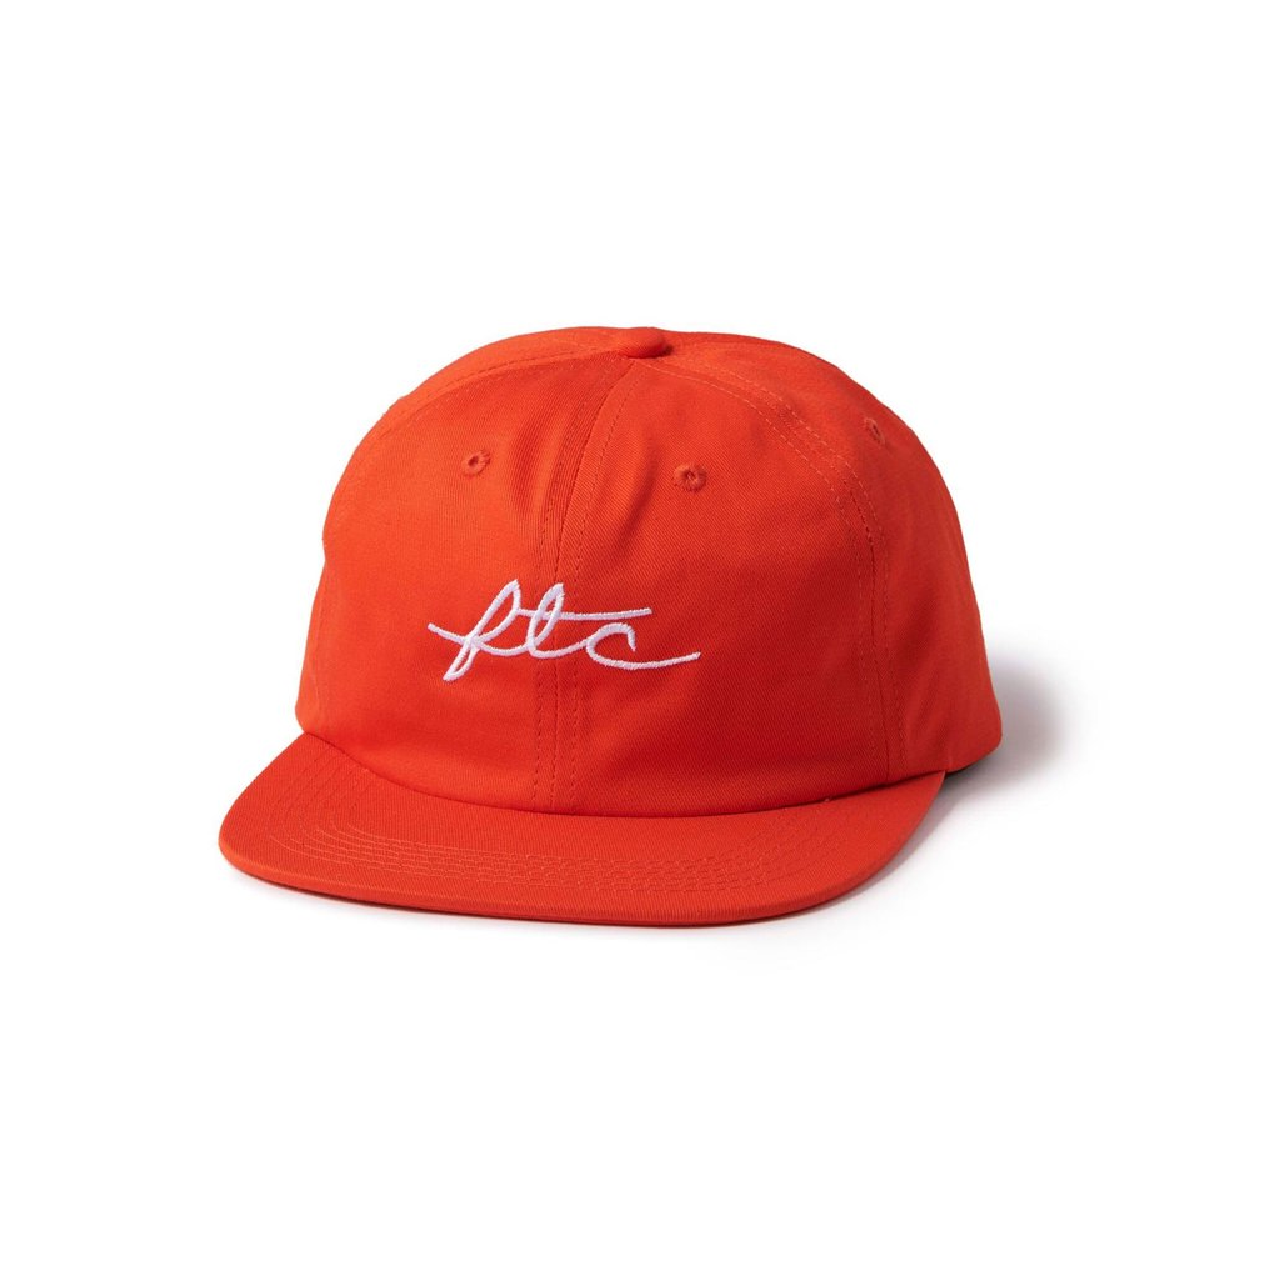 FTC - Viva 6 Panel Hat Orange